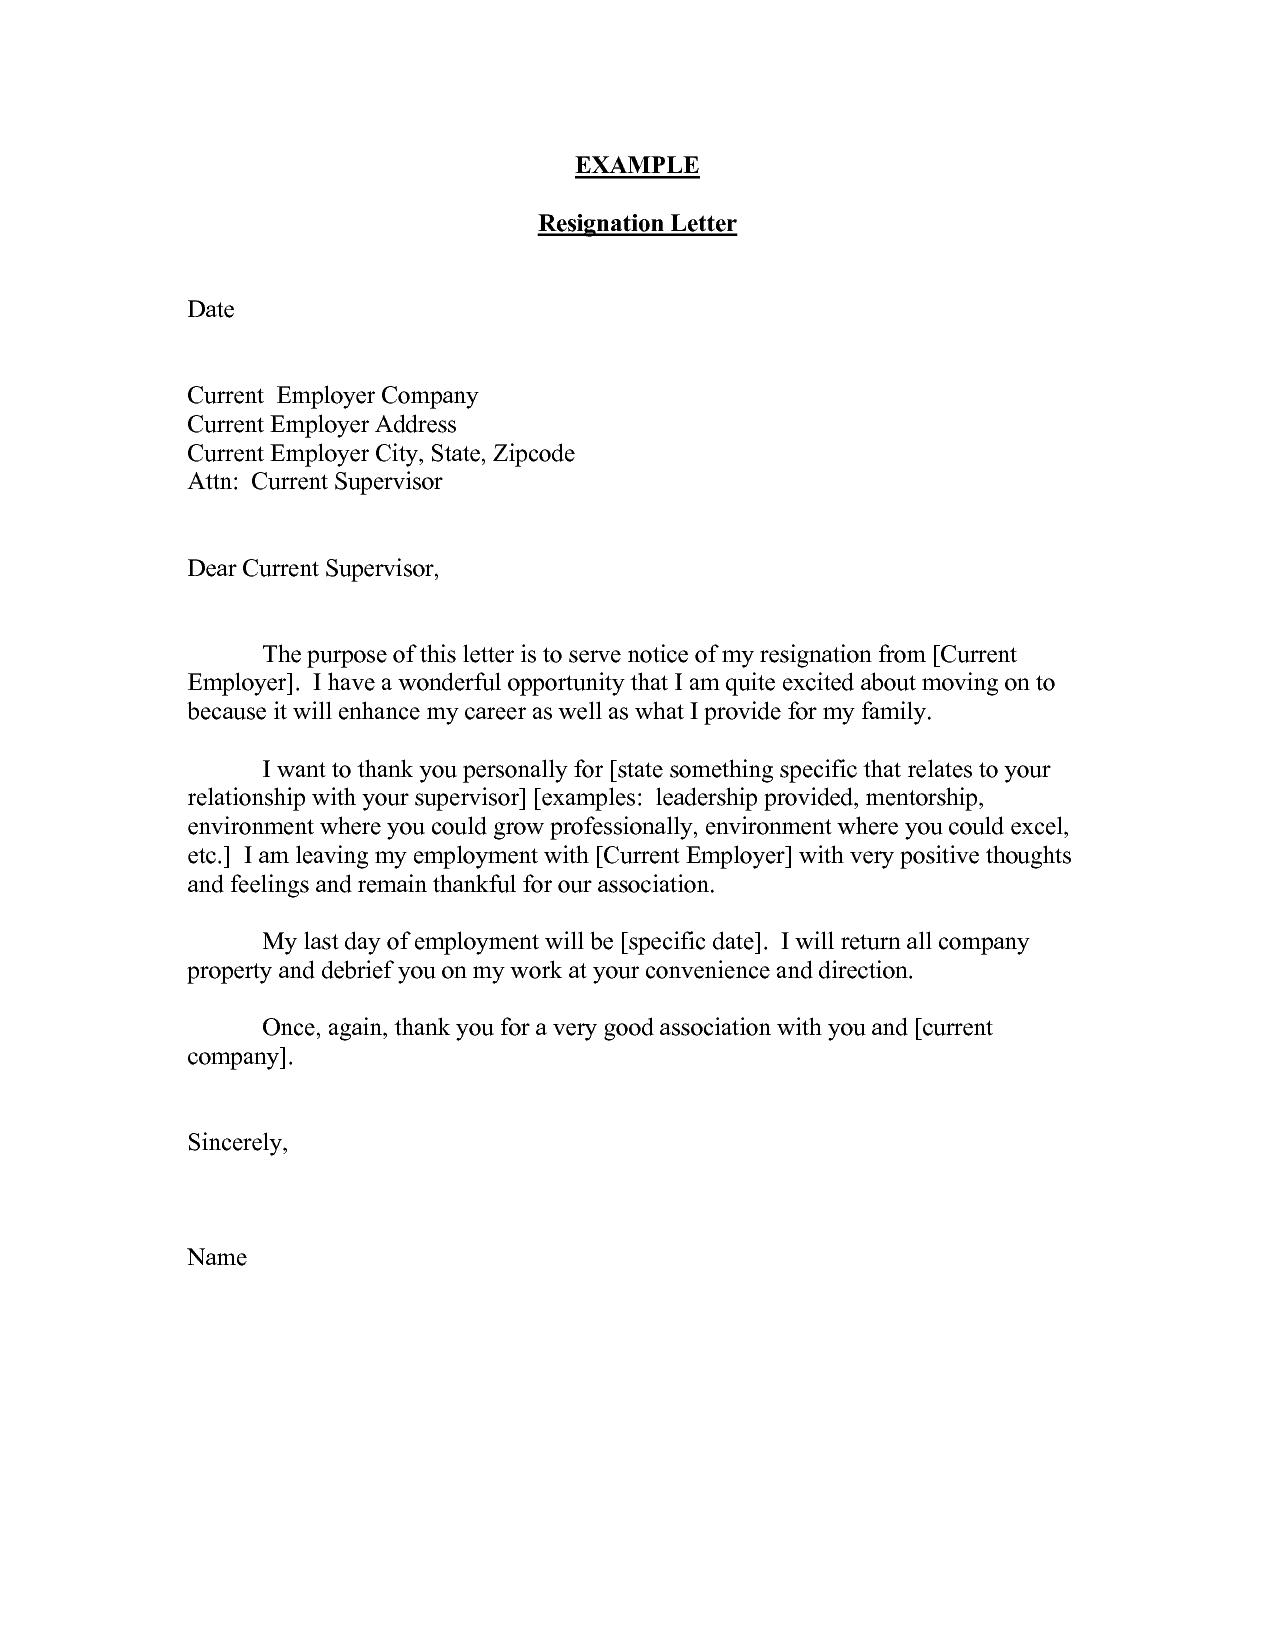 Resignation Format Resignation Letter Sample Doc Resume And Letter Samplewriting A